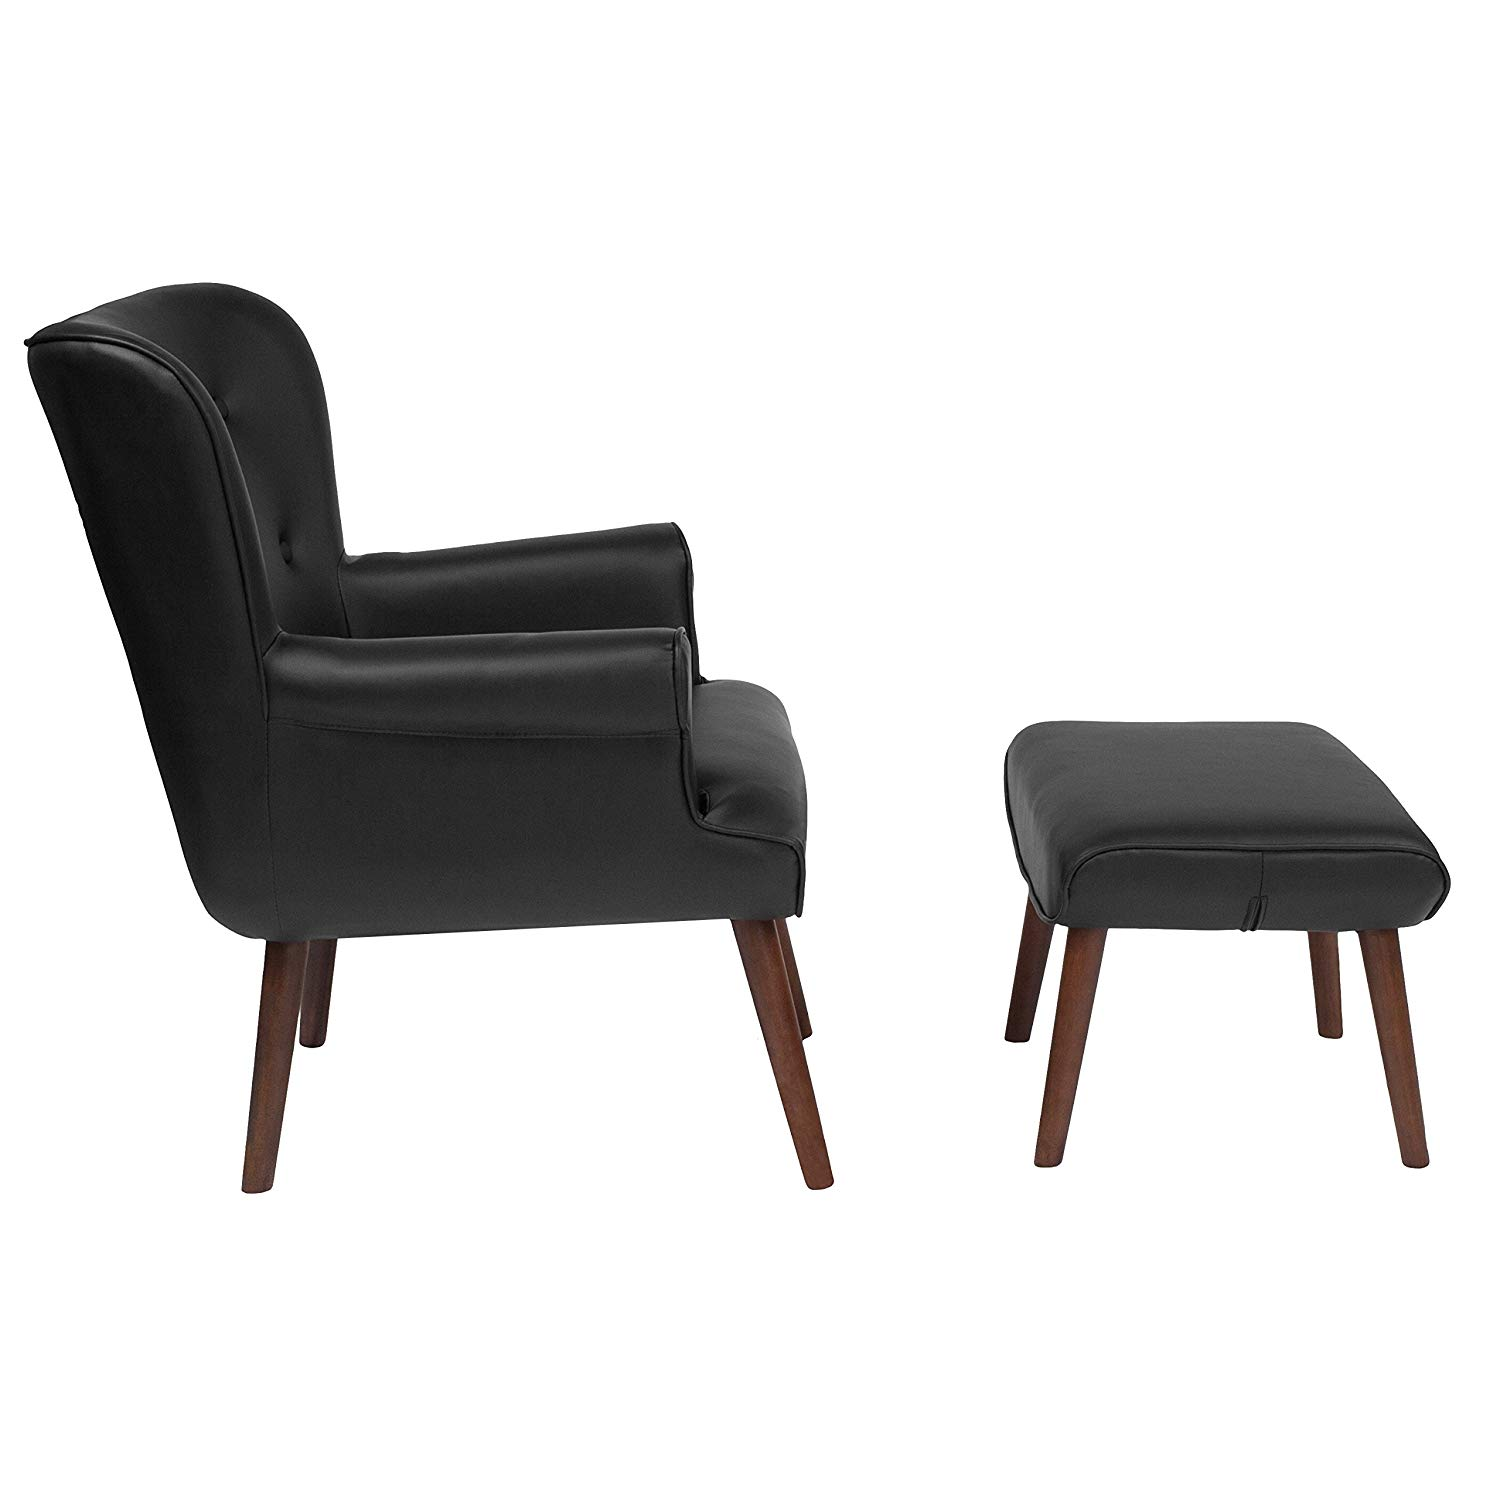 Get Quotations · MyEasyShopping Black Leather Upholstered Chair And Ottoman  Set Glider And Ottoman Set Chair Home